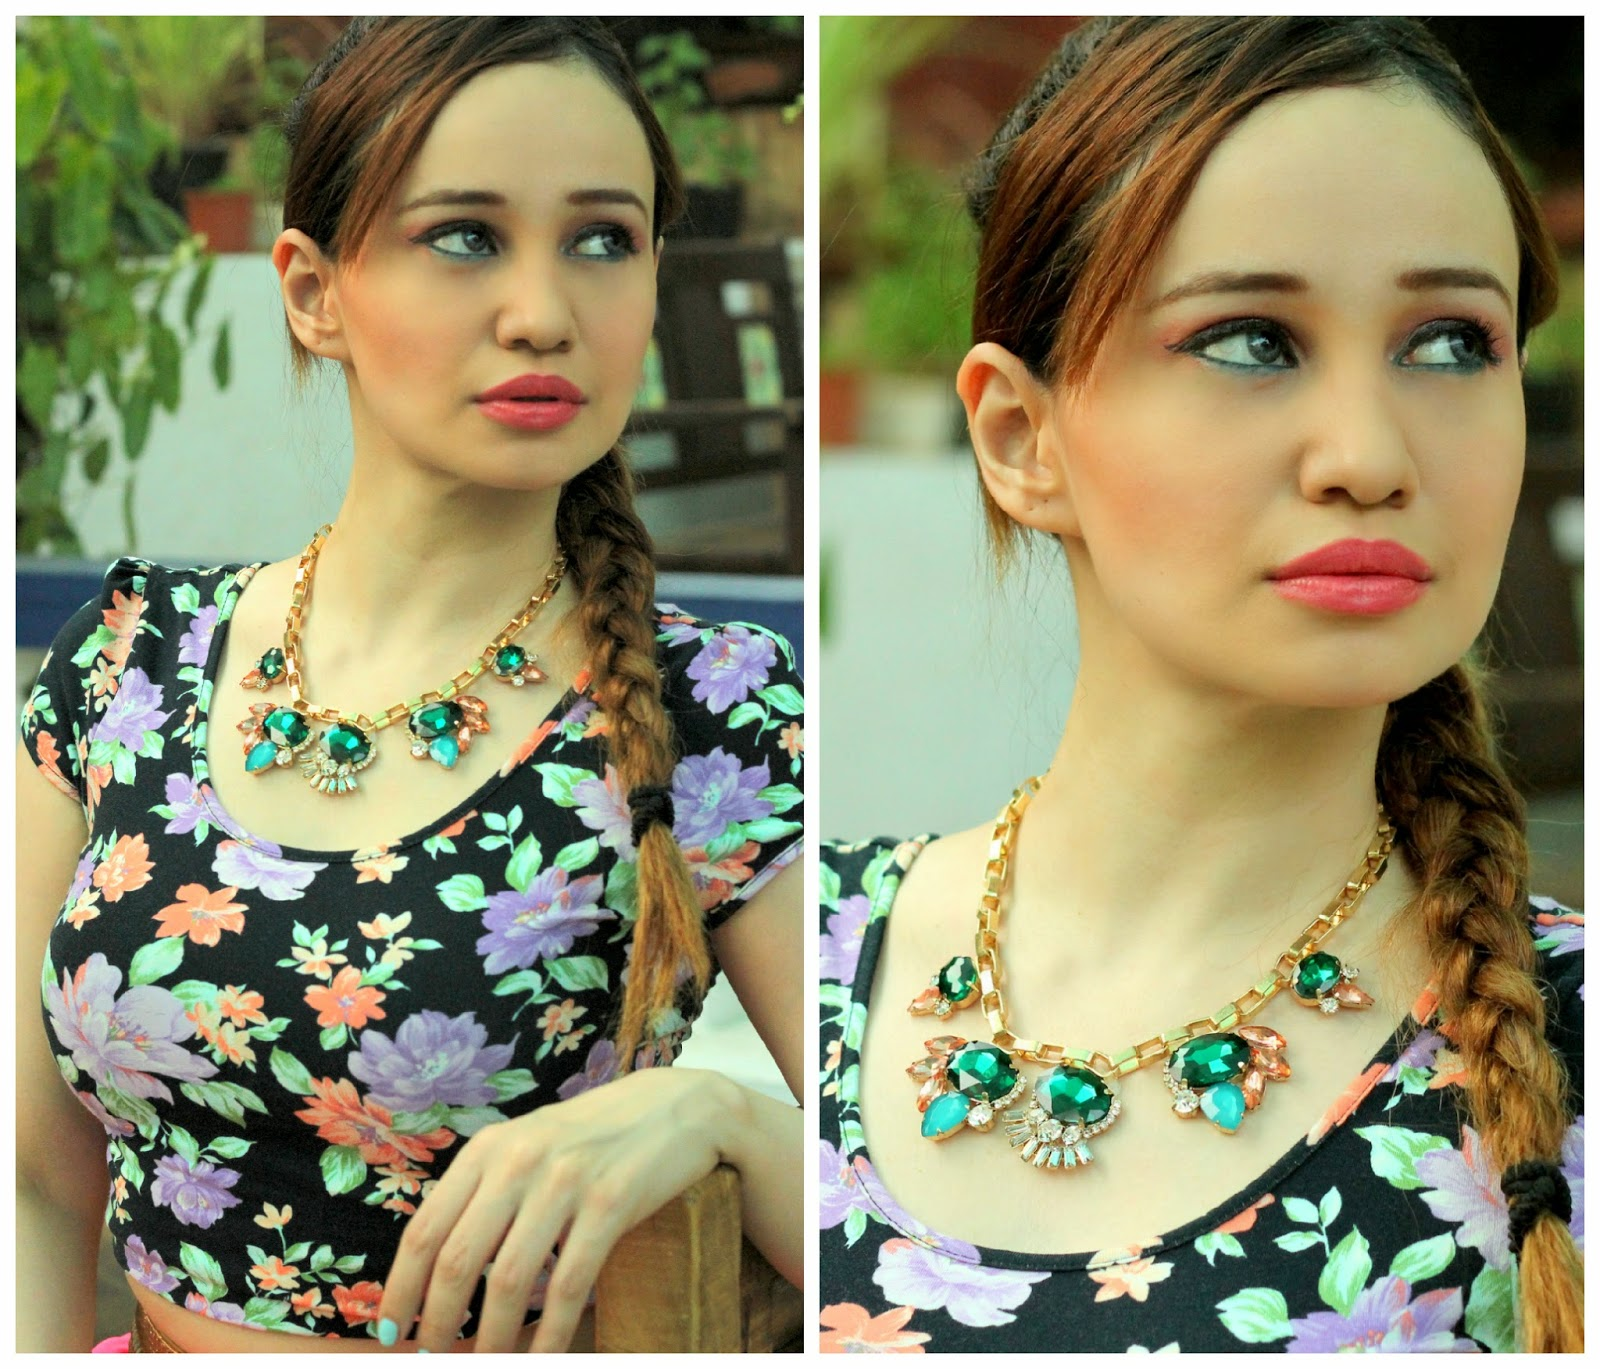 Floral Crop Top & Multi-Stone Necklace